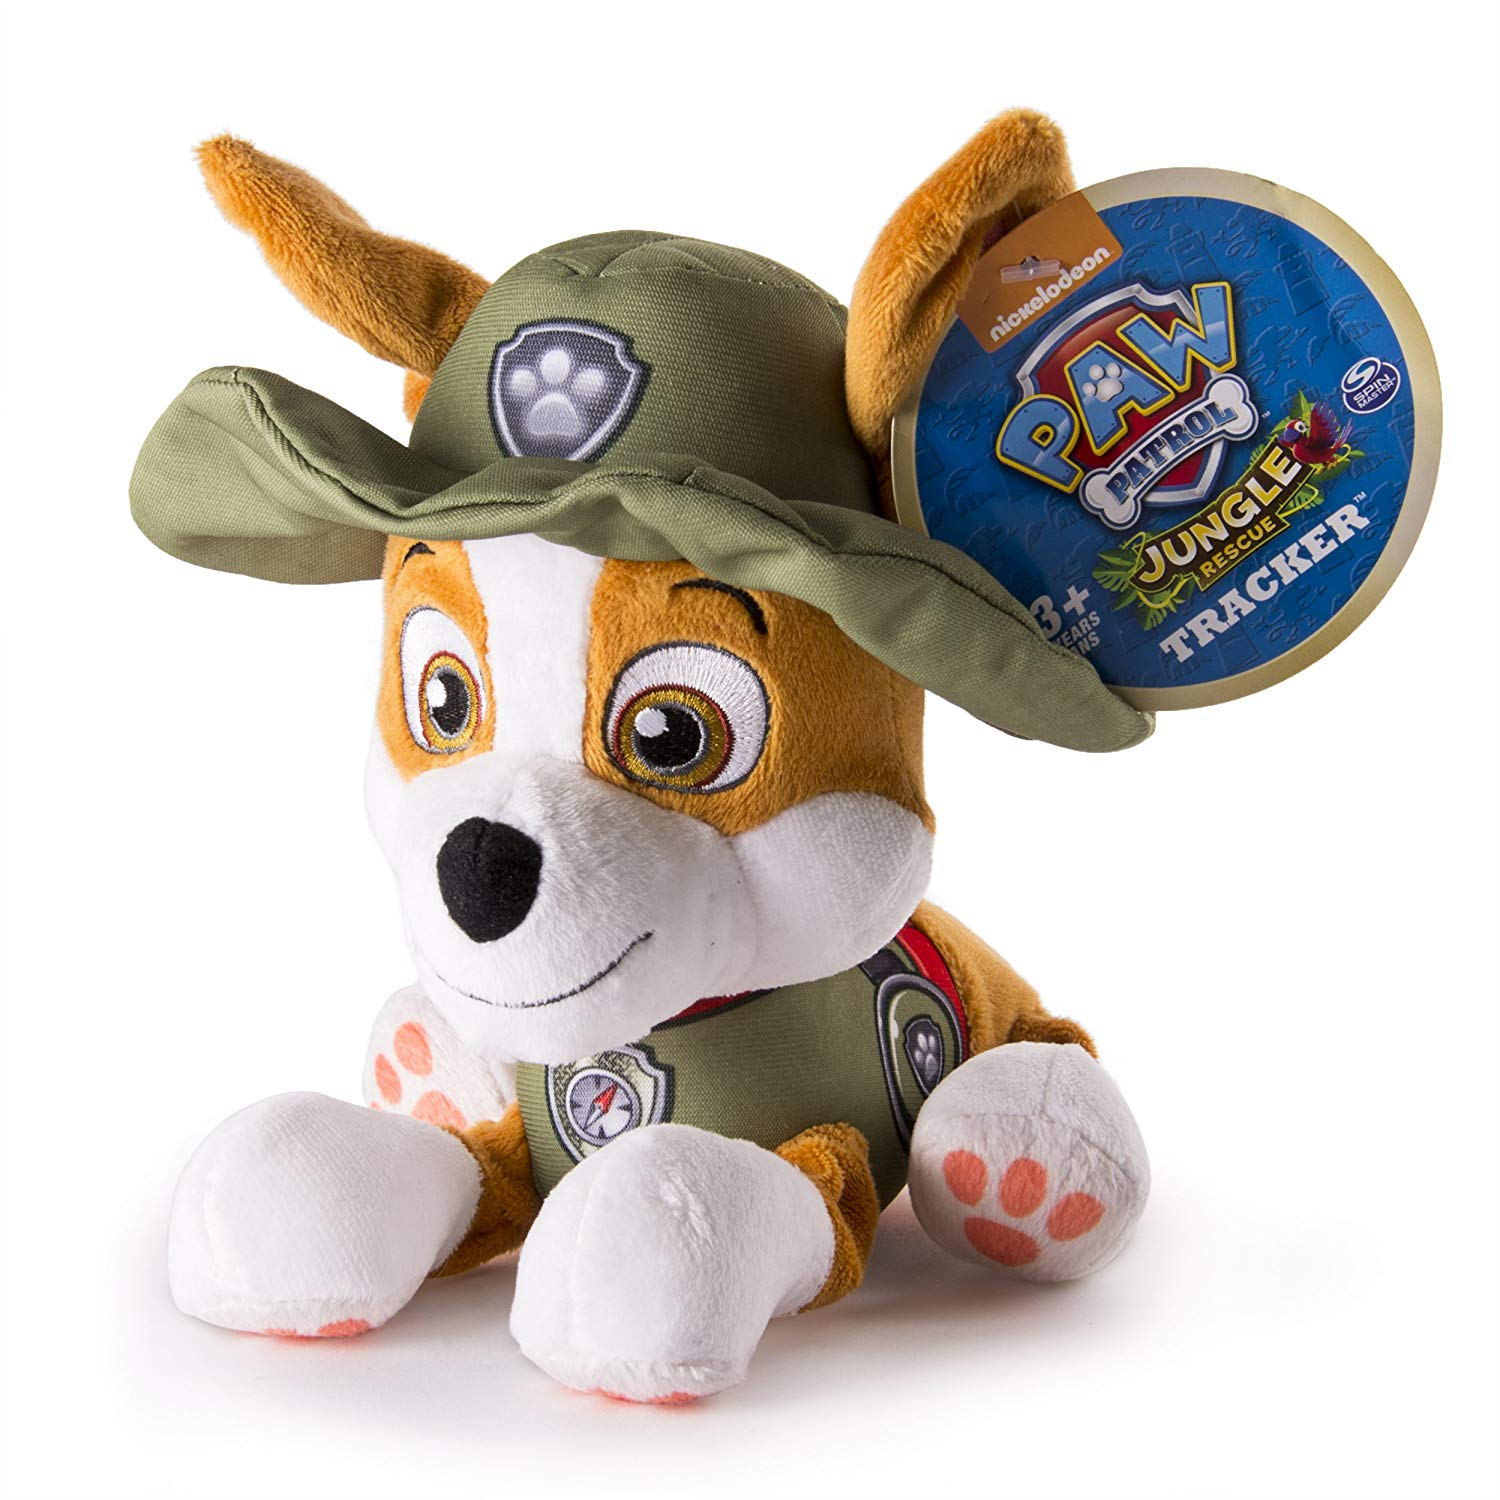 Paw Patrol Jungle Rescue Genuine Licenced Plush Tracker